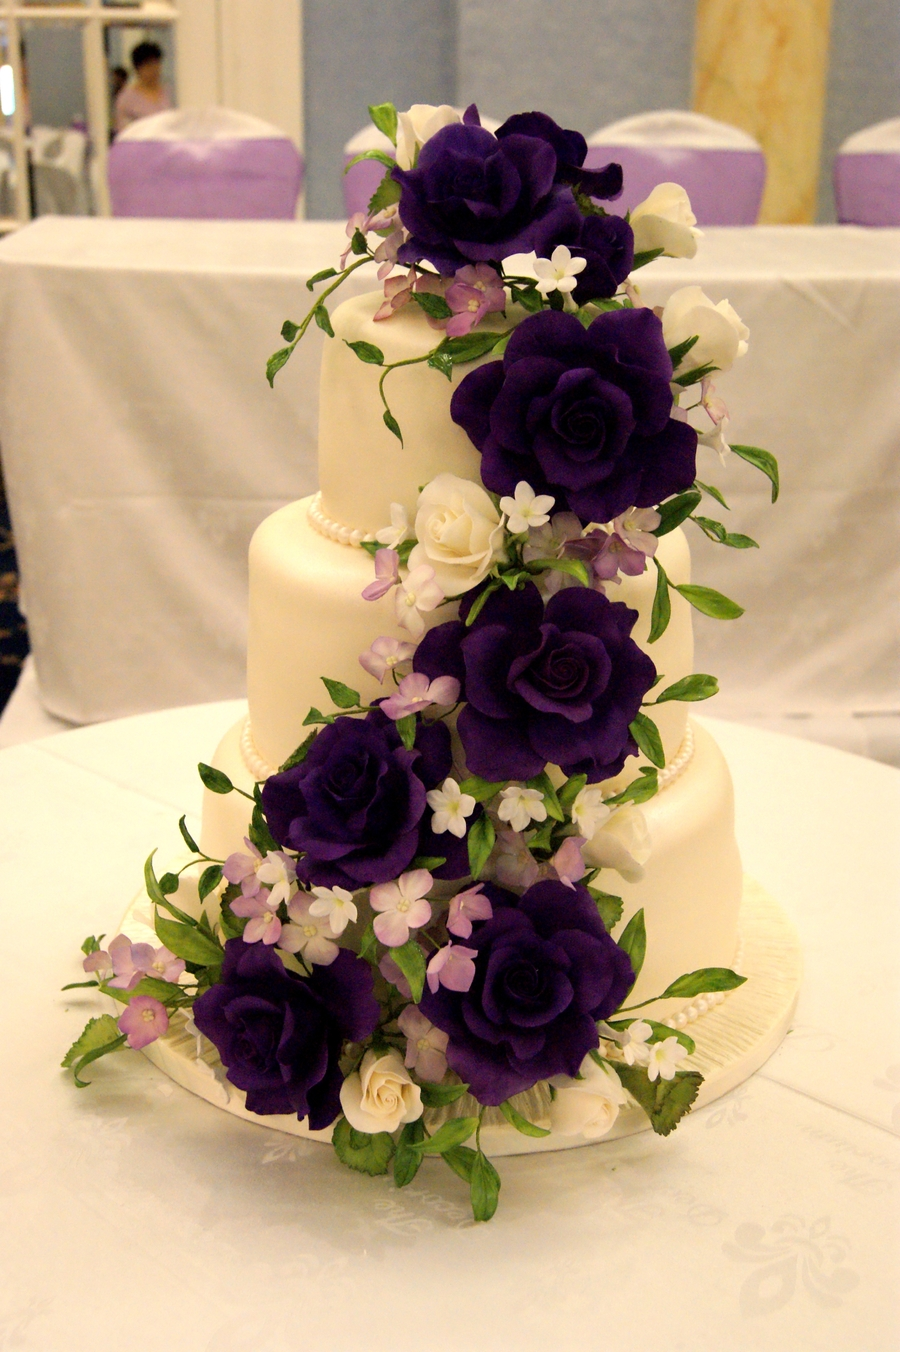 Top 30 Fantastic Cakes with Roses - Page 18 of 35